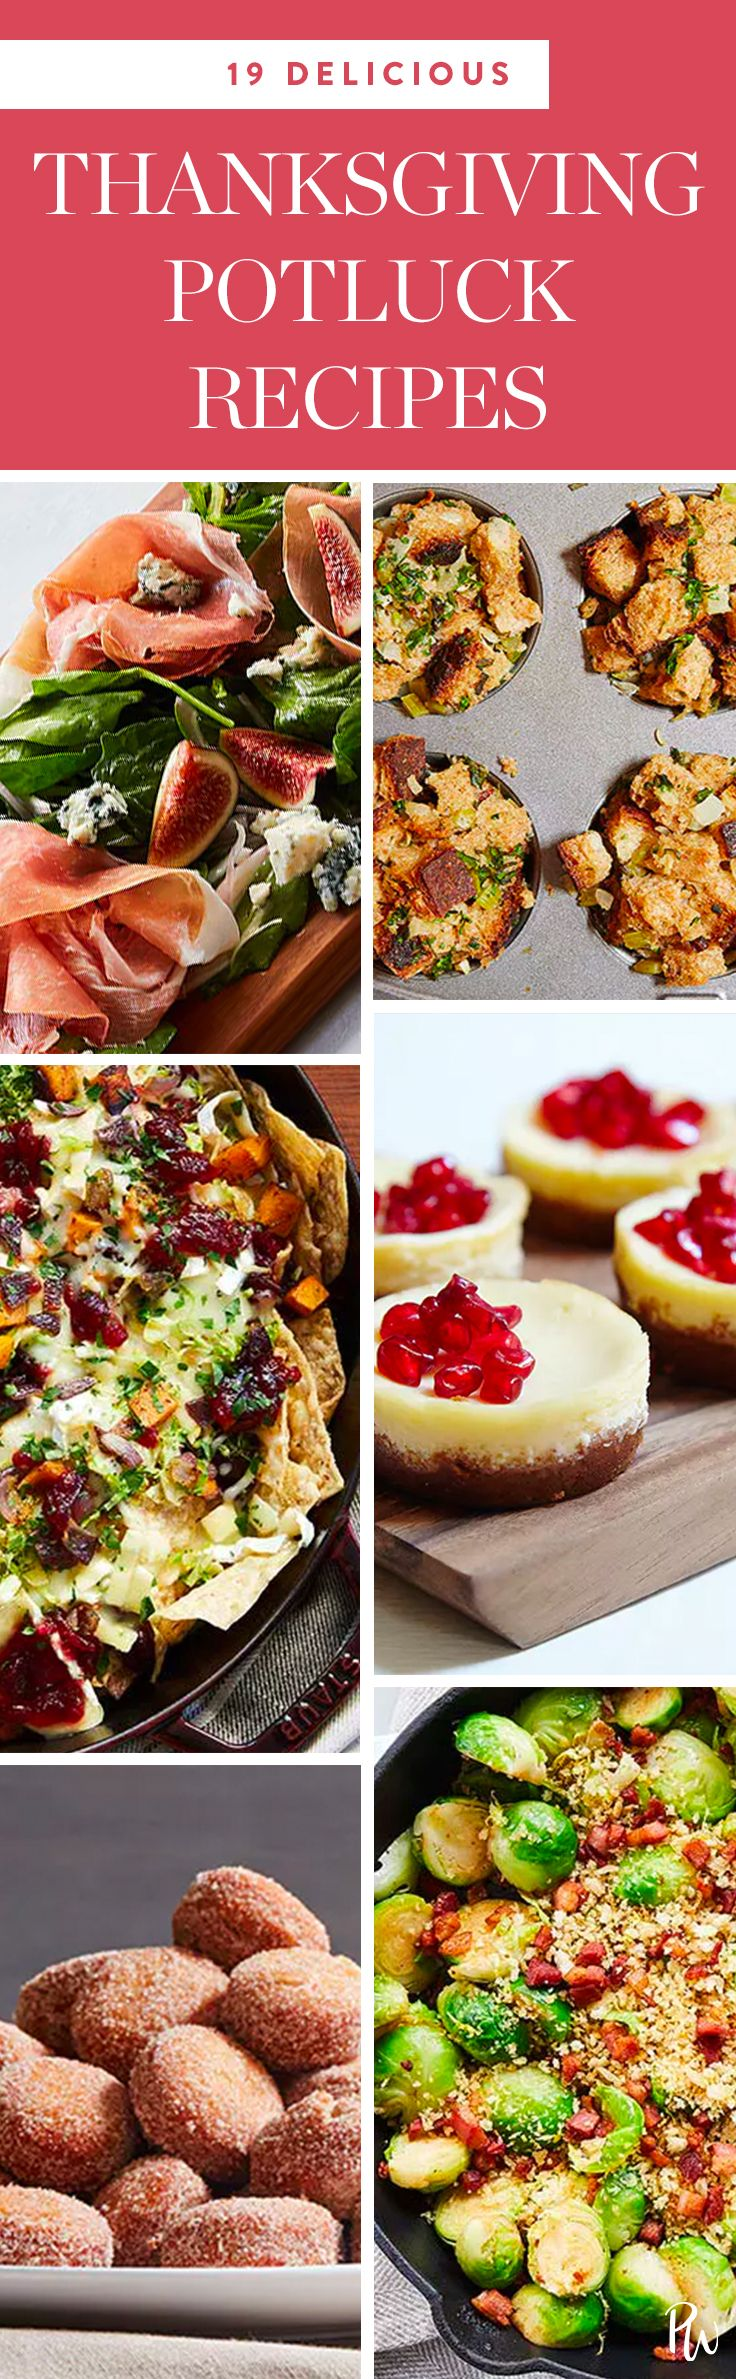 Whether it's a huge family reunion or a low-key Friendsgiving at your neighbor's place, we're willing to bet you're on the guest list for at least one potluck Thanksgiving party this month. Here's exactly what to bring. #thanksgiving #thanksgivingpotluck #thanksgivingrecipes #potluckrecipes